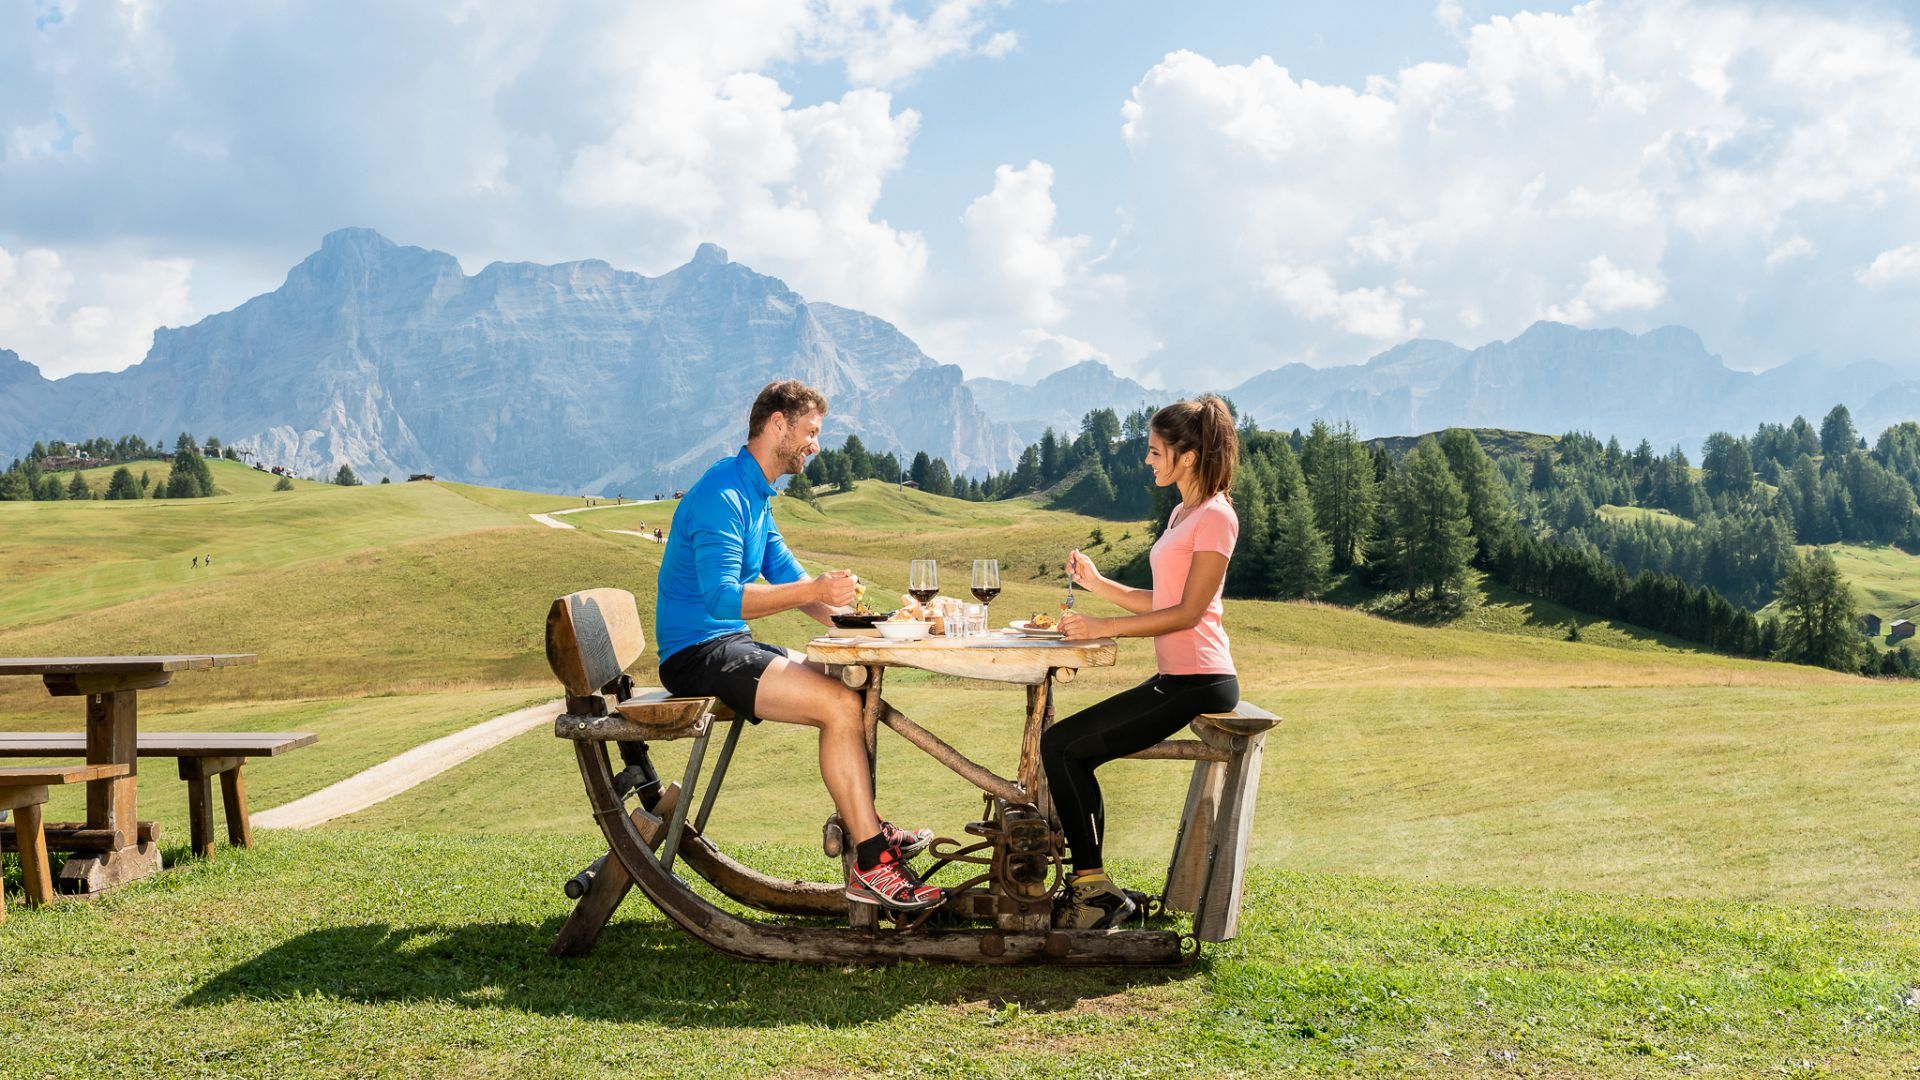 Immagine: estate in Alta Badia